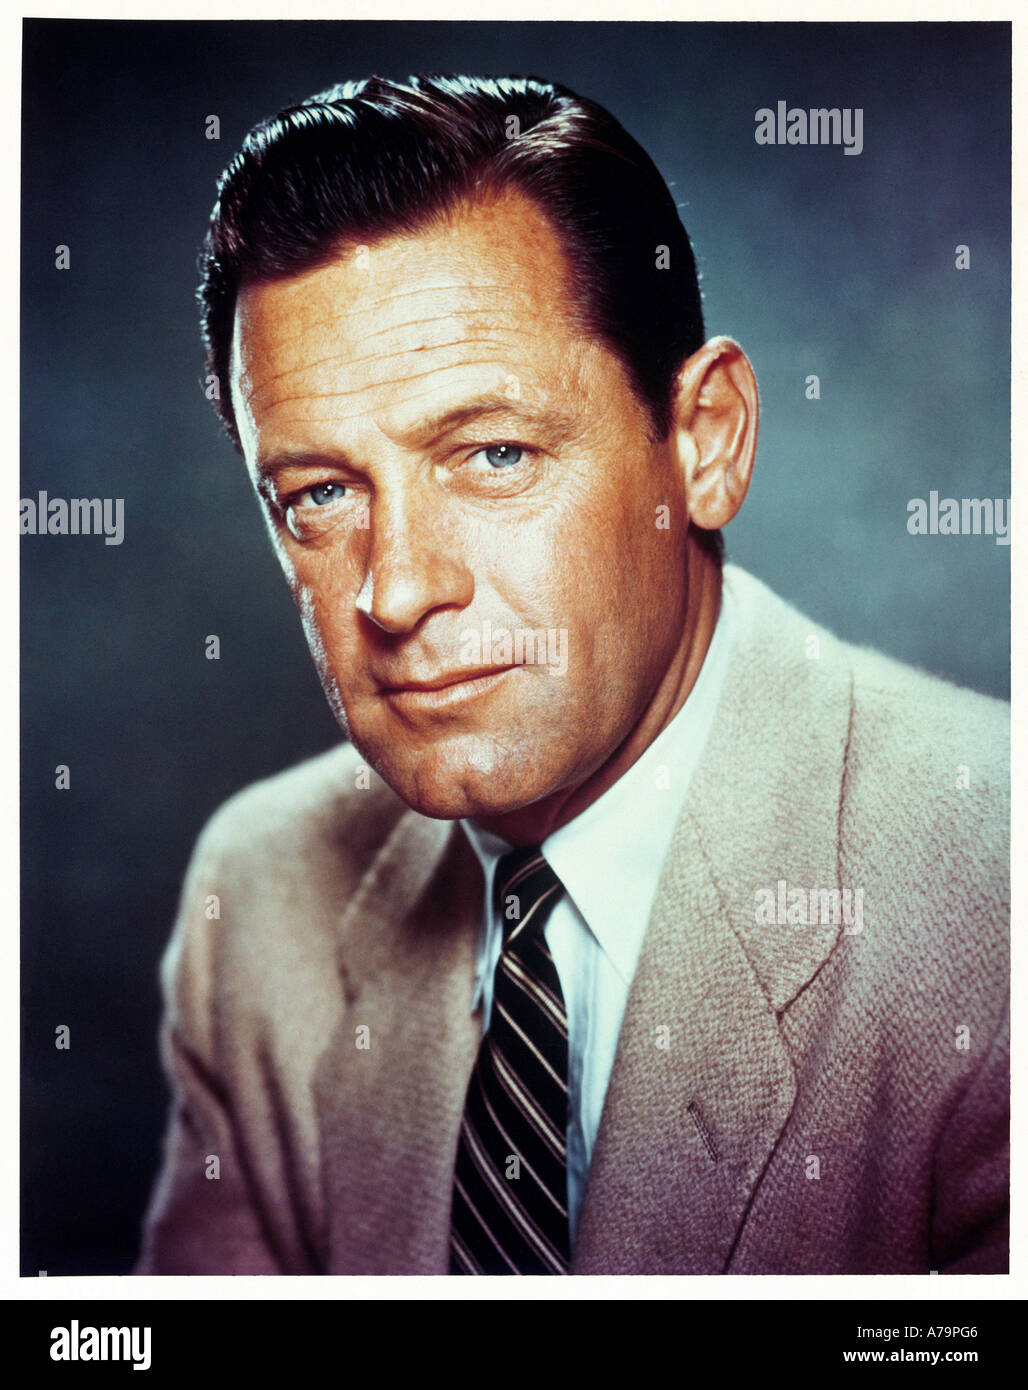 WILLIAM HOLDEN US actor - Stock Image